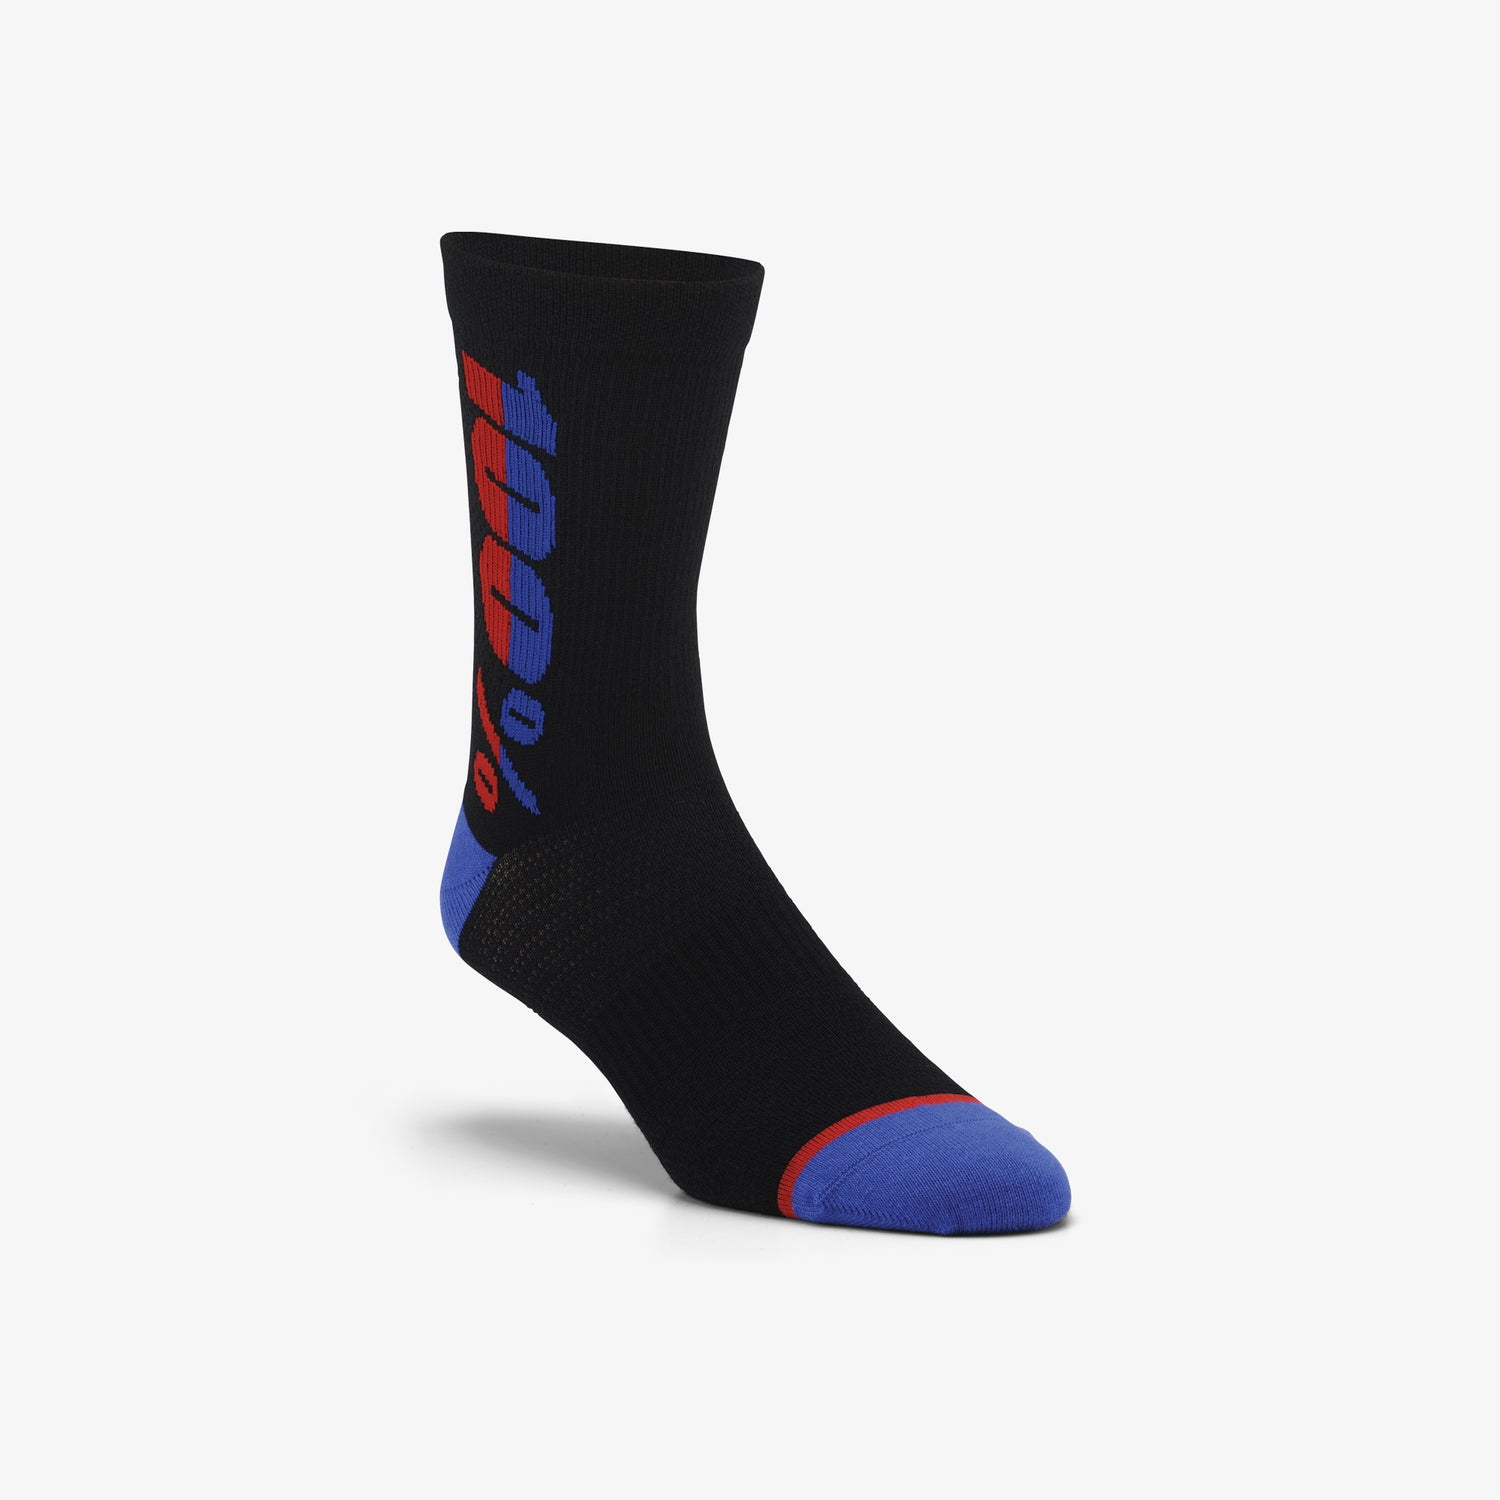 RYTHYM Merino Wool Performance Socks - Black